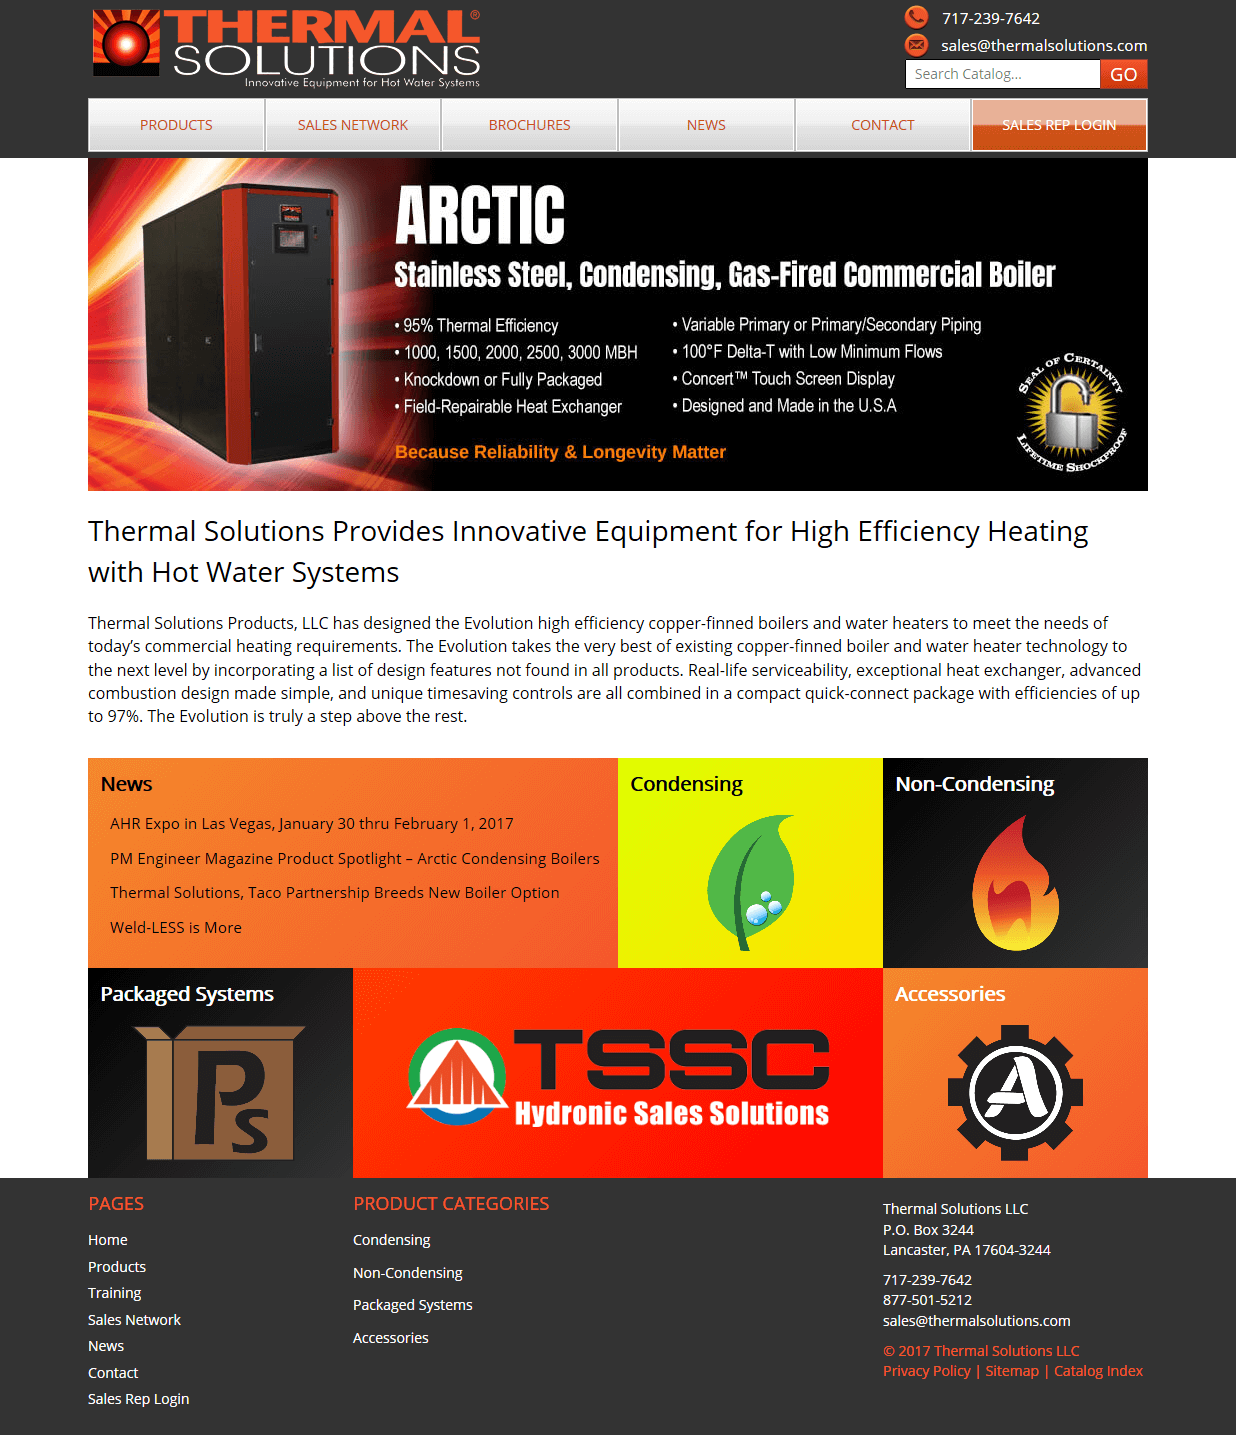 Thermal Solutions, LLC